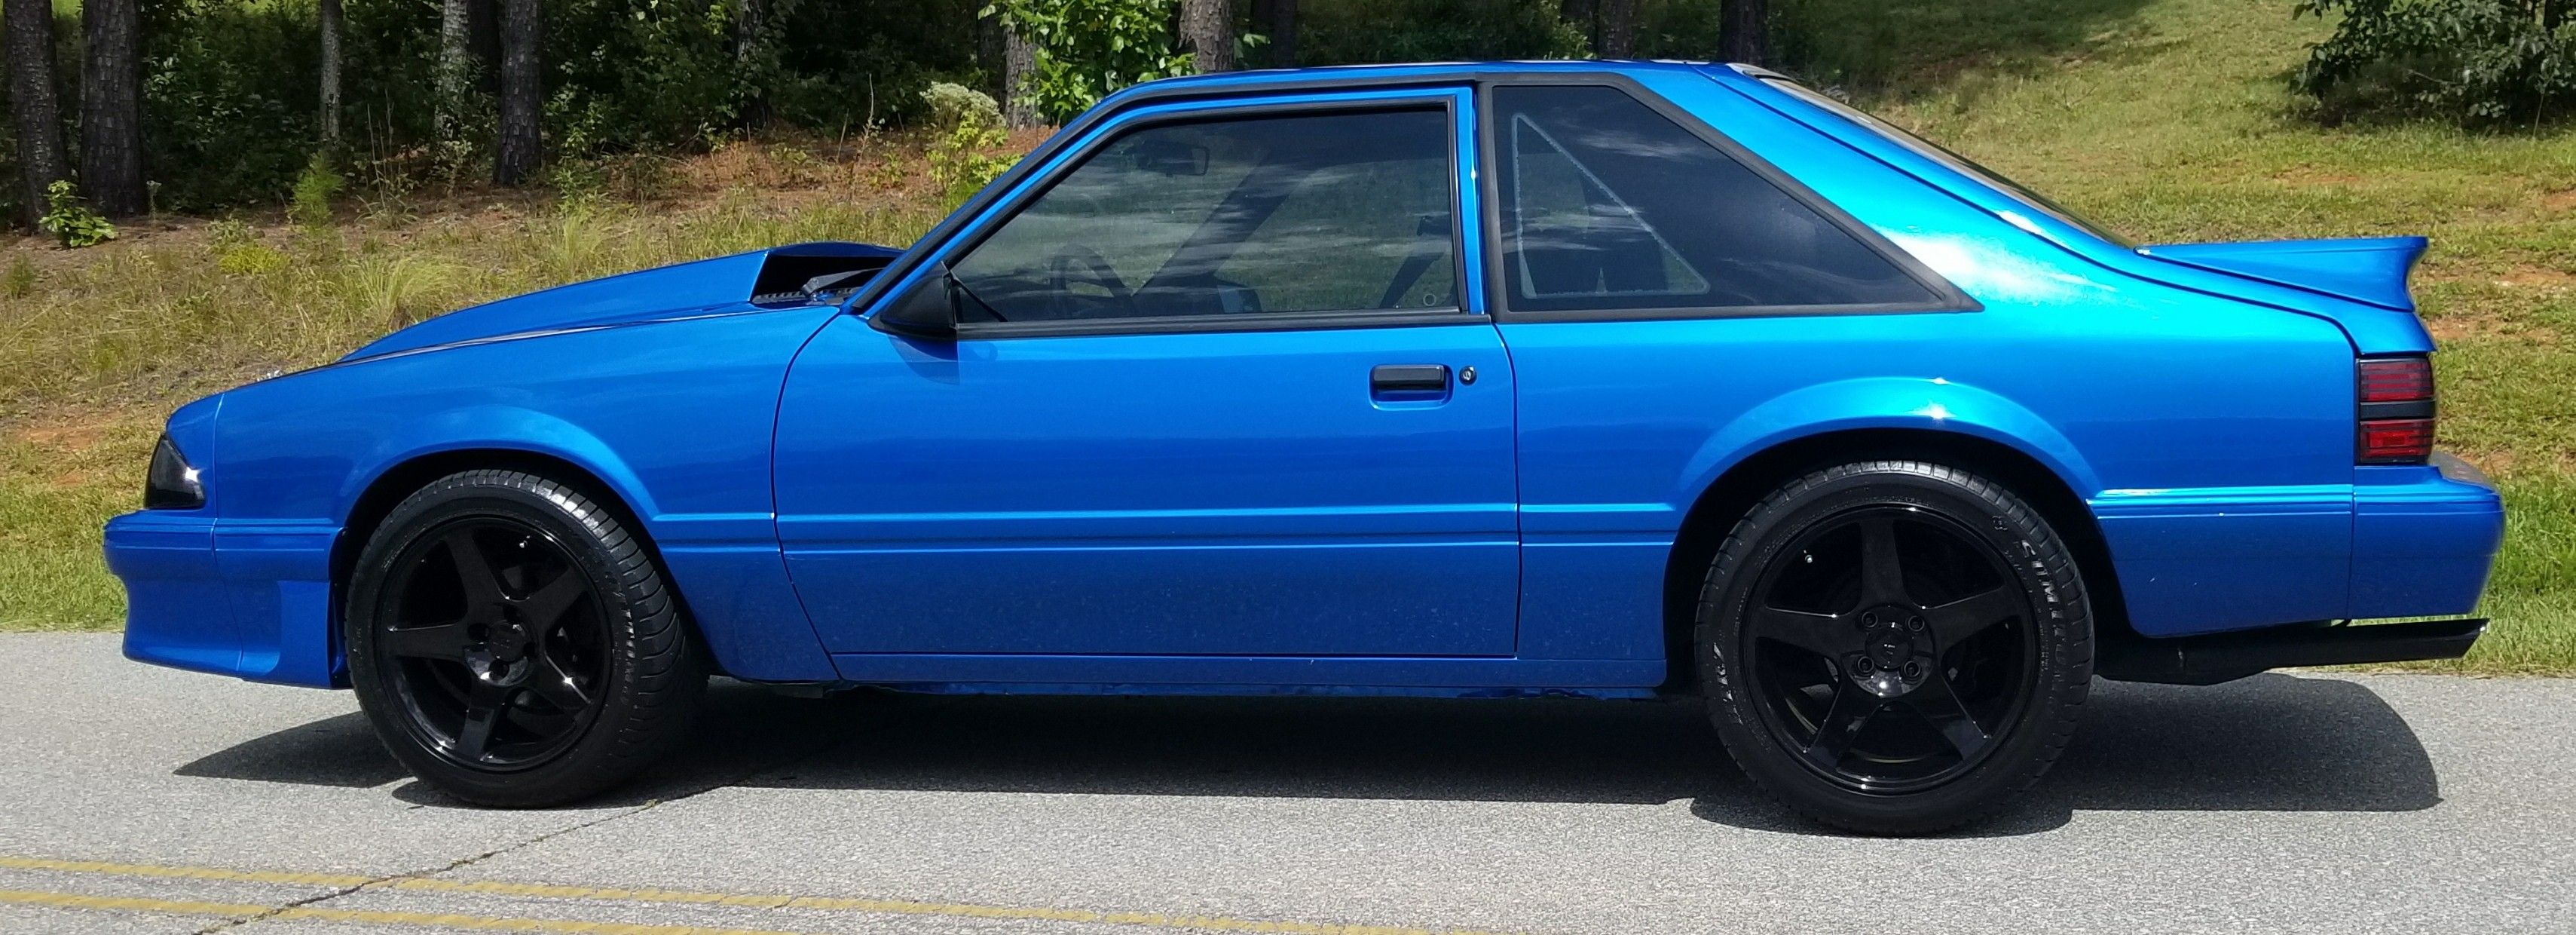 1990 Mustang Lx 5 0 Hatchback Classic Cars Muscle Blue Mustang Fox Mustang